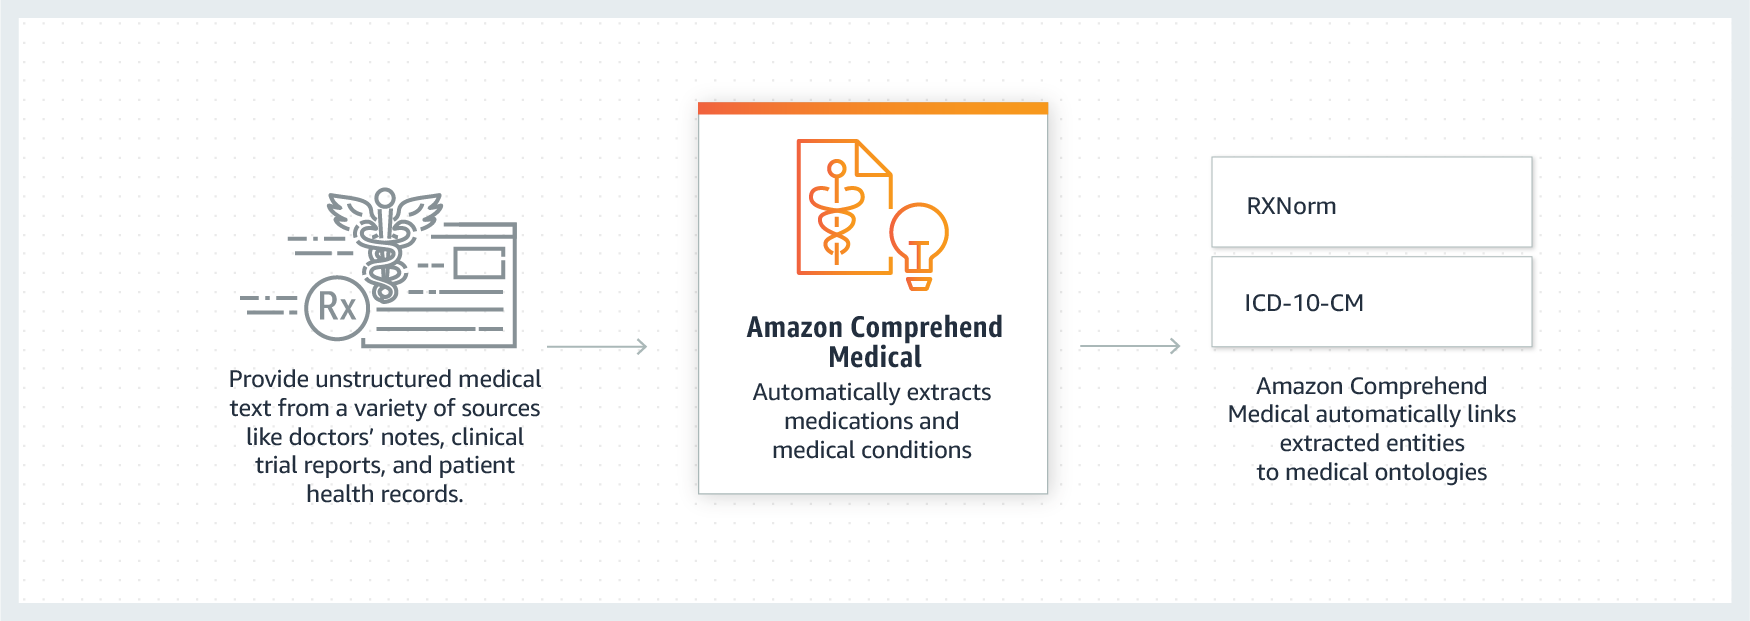 Amazon Comprehend Medical 的工作原理